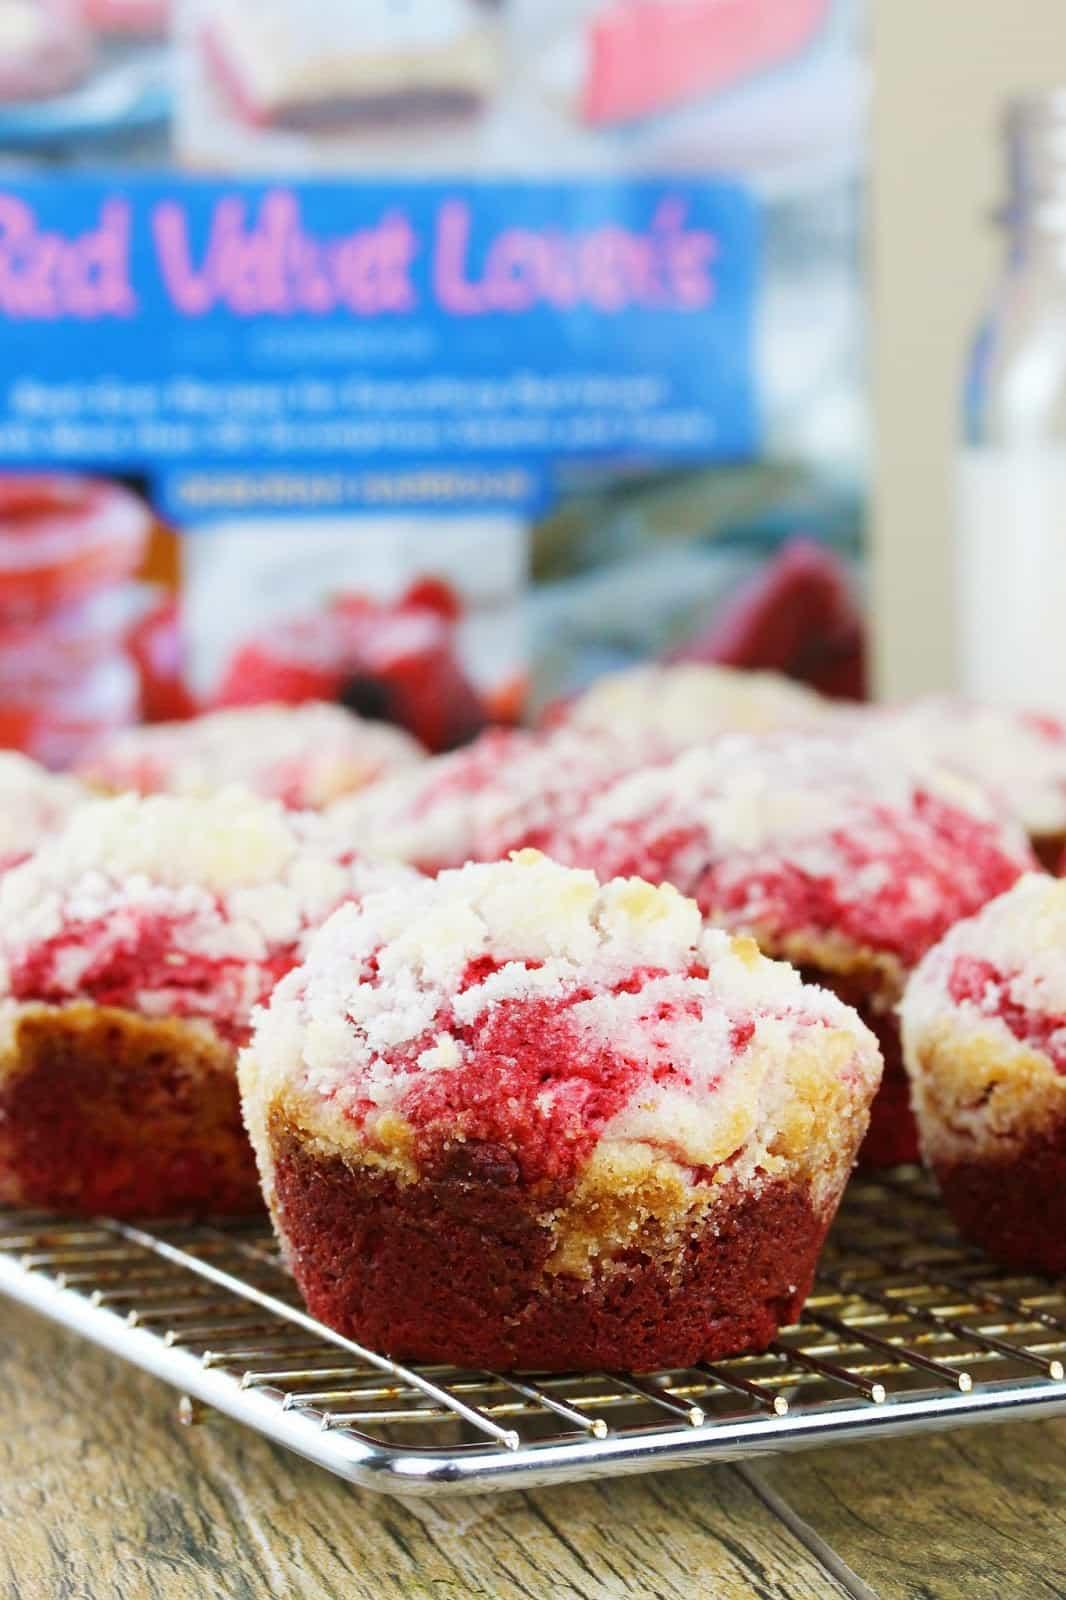 Cream Cheese Muffins from the Red Velvet Lover's Cookbook by Deborah Harroun, resting on a cooling rack